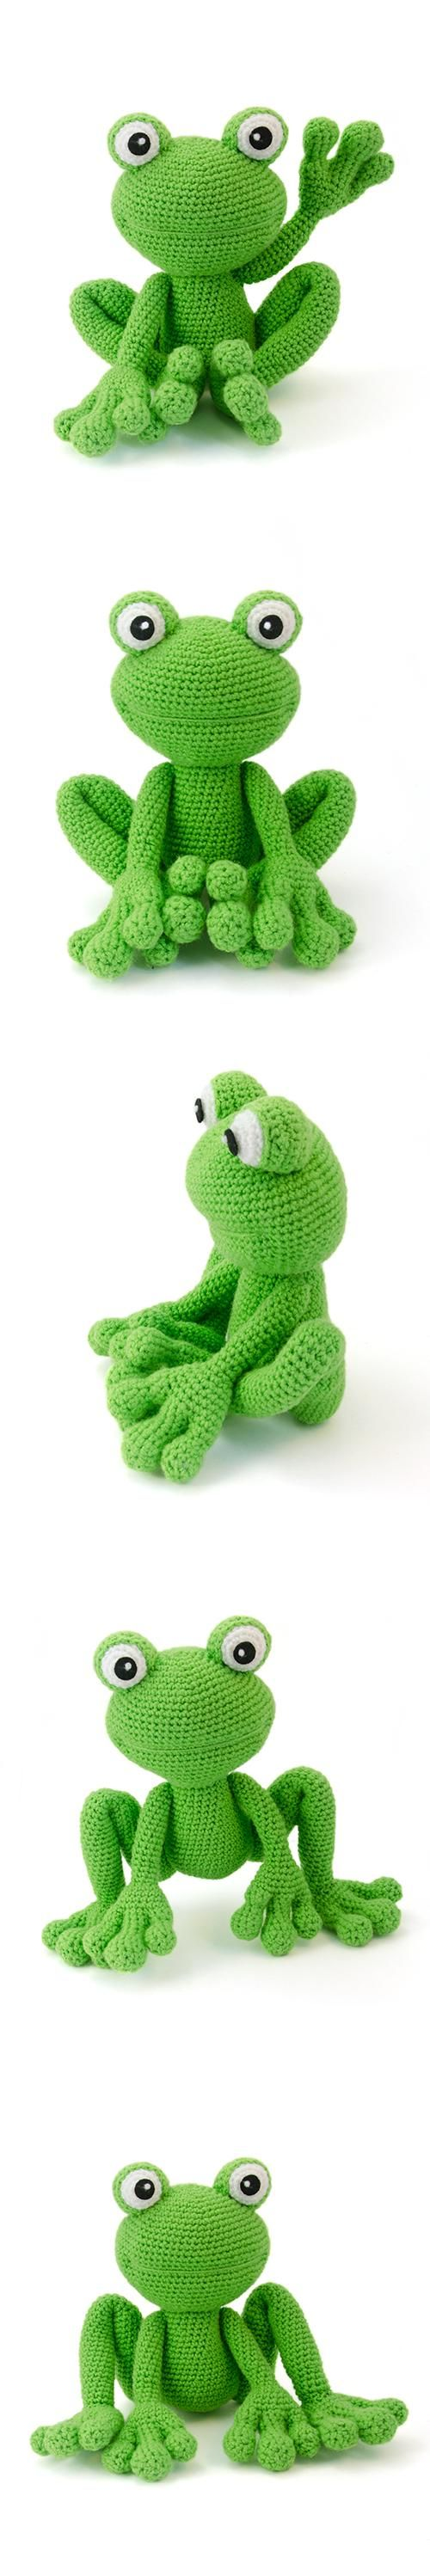 Kirk The Frog Amigurumi Pattern                                                                                                                                                      More